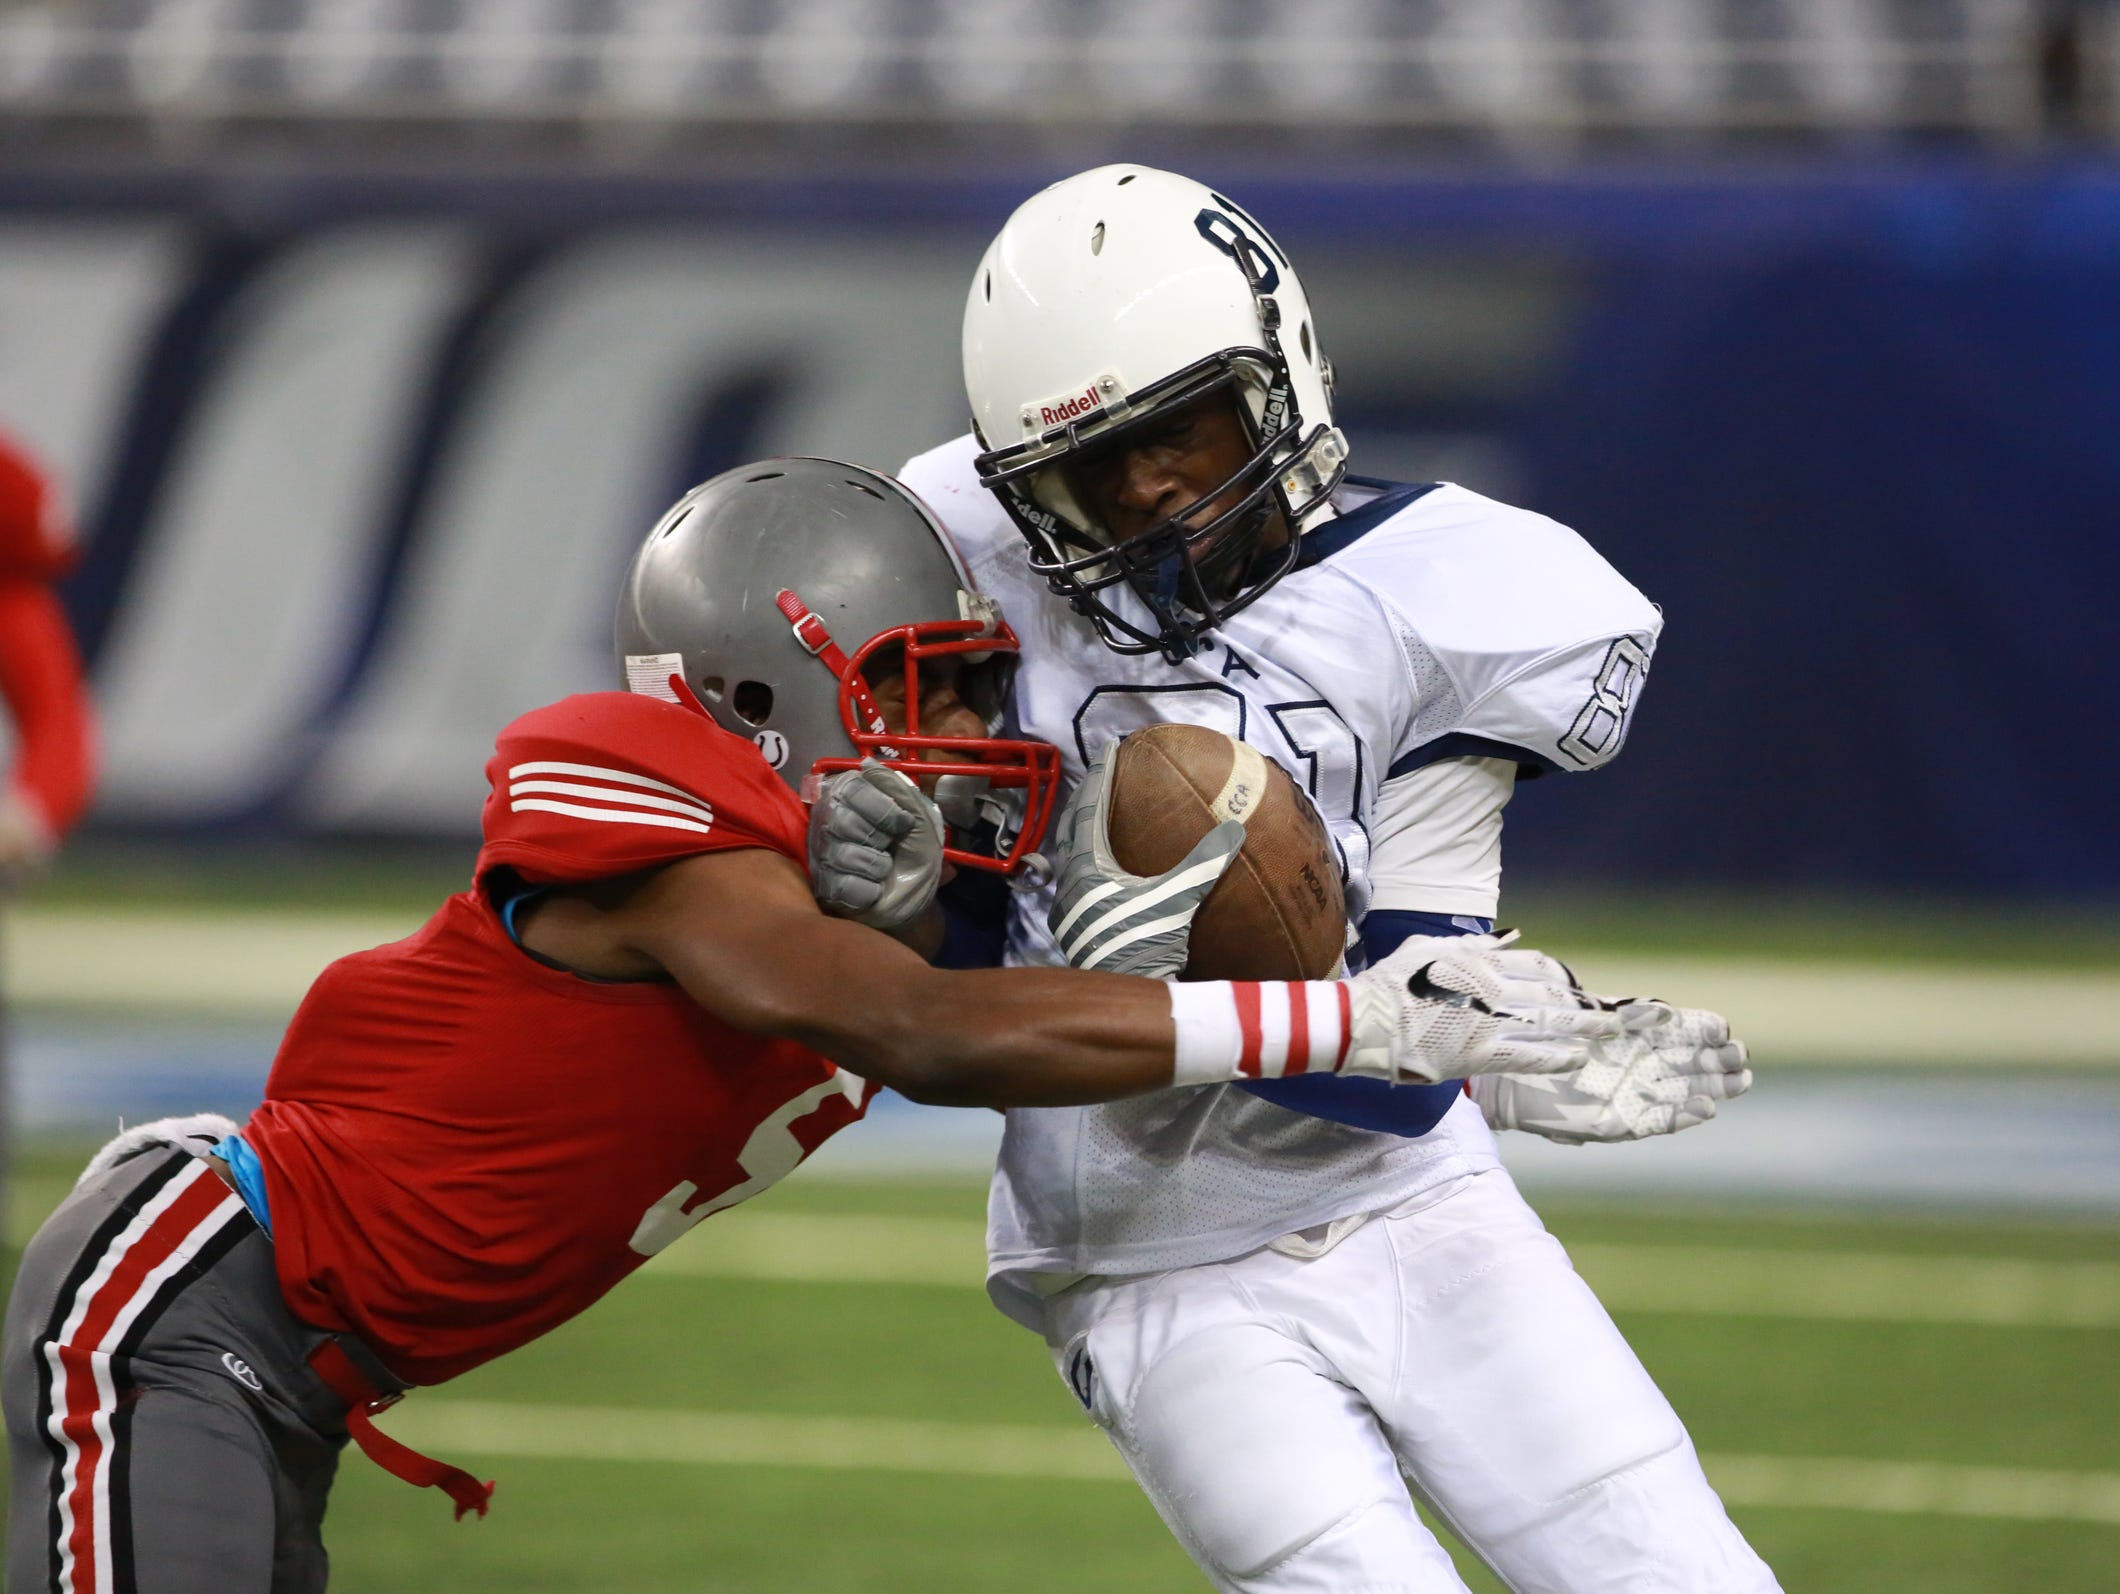 Detroit Central's Trevian Hill runs with the ball against Northwestern's Lamar Perdue, in the first quarter of the Detroit PSL Division II game at Ford Field Friday.